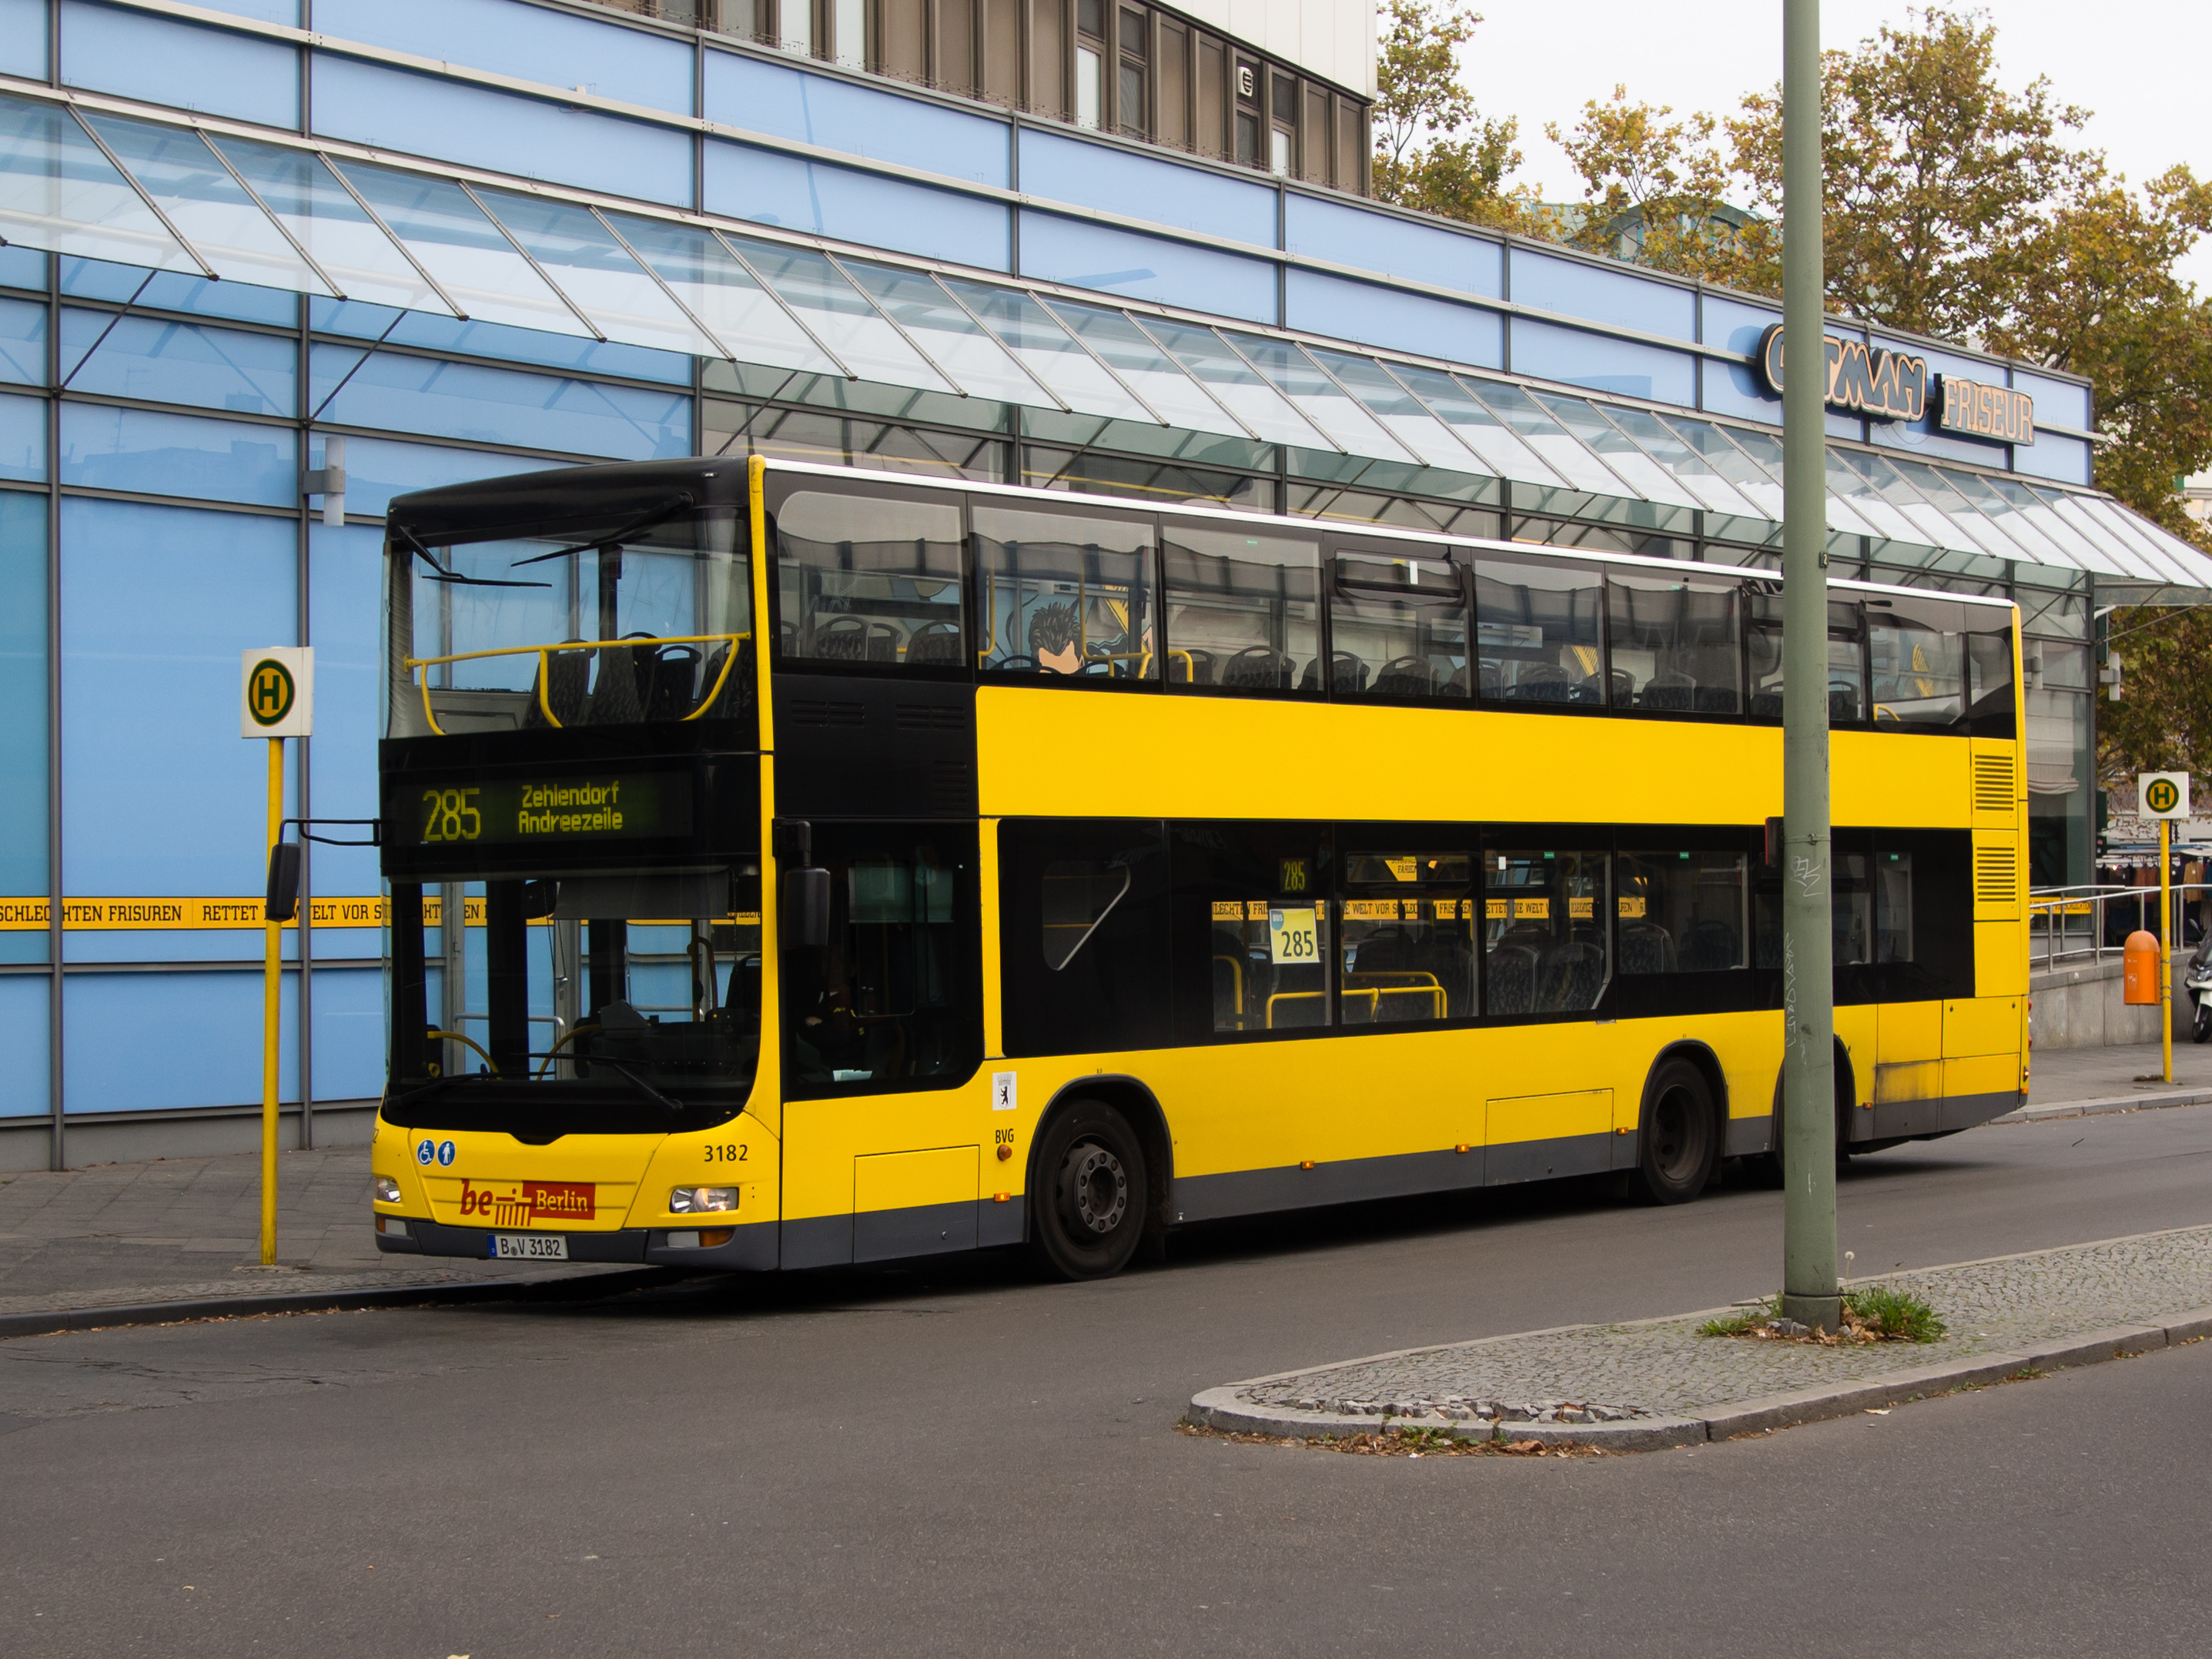 file bvg bus am rathaus steglitz 20141104 wikimedia commons. Black Bedroom Furniture Sets. Home Design Ideas